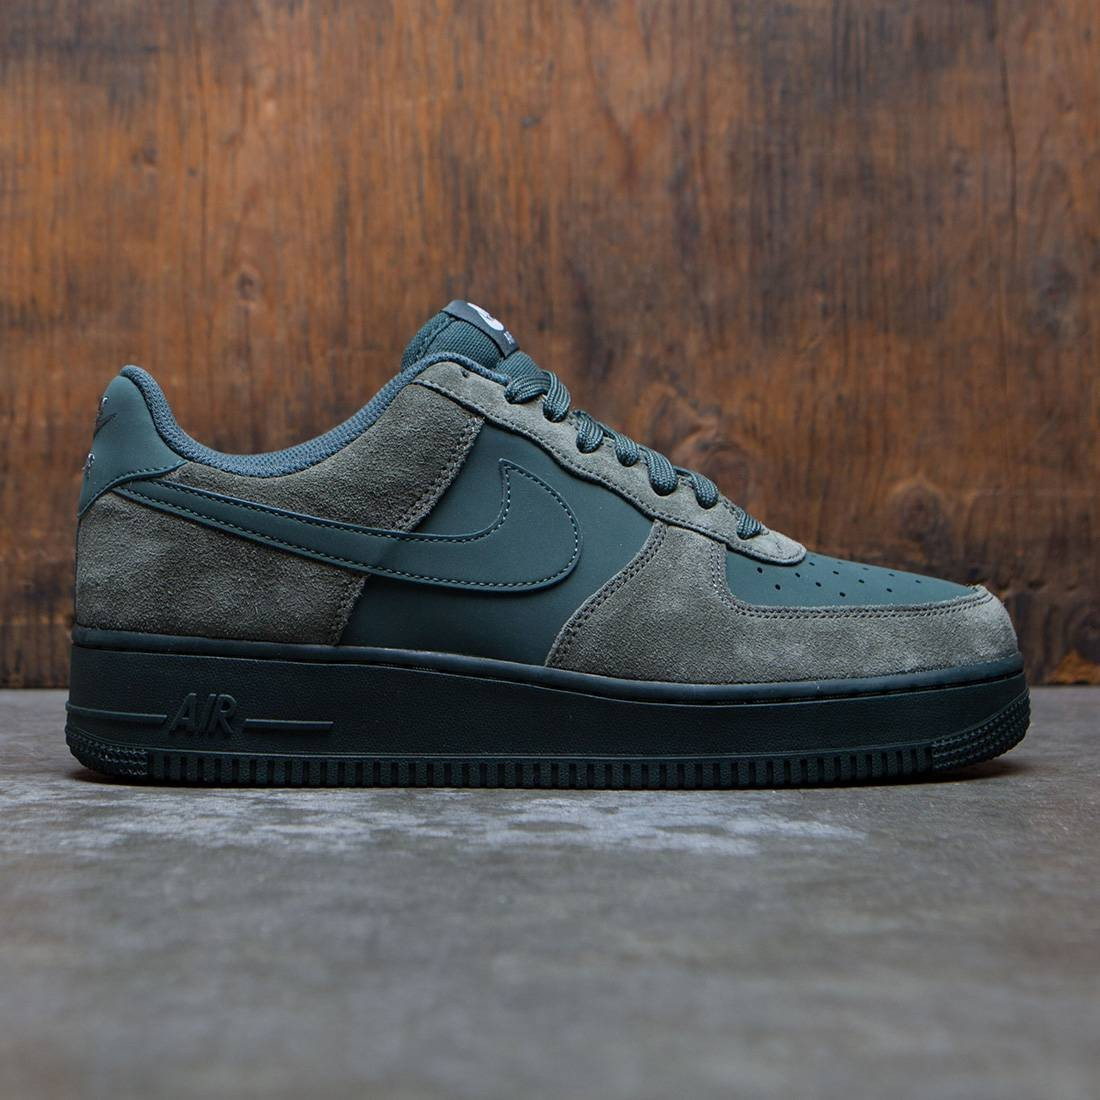 half off f1d9c b5e2e nike men air force 1 tan river rock vintage green white black